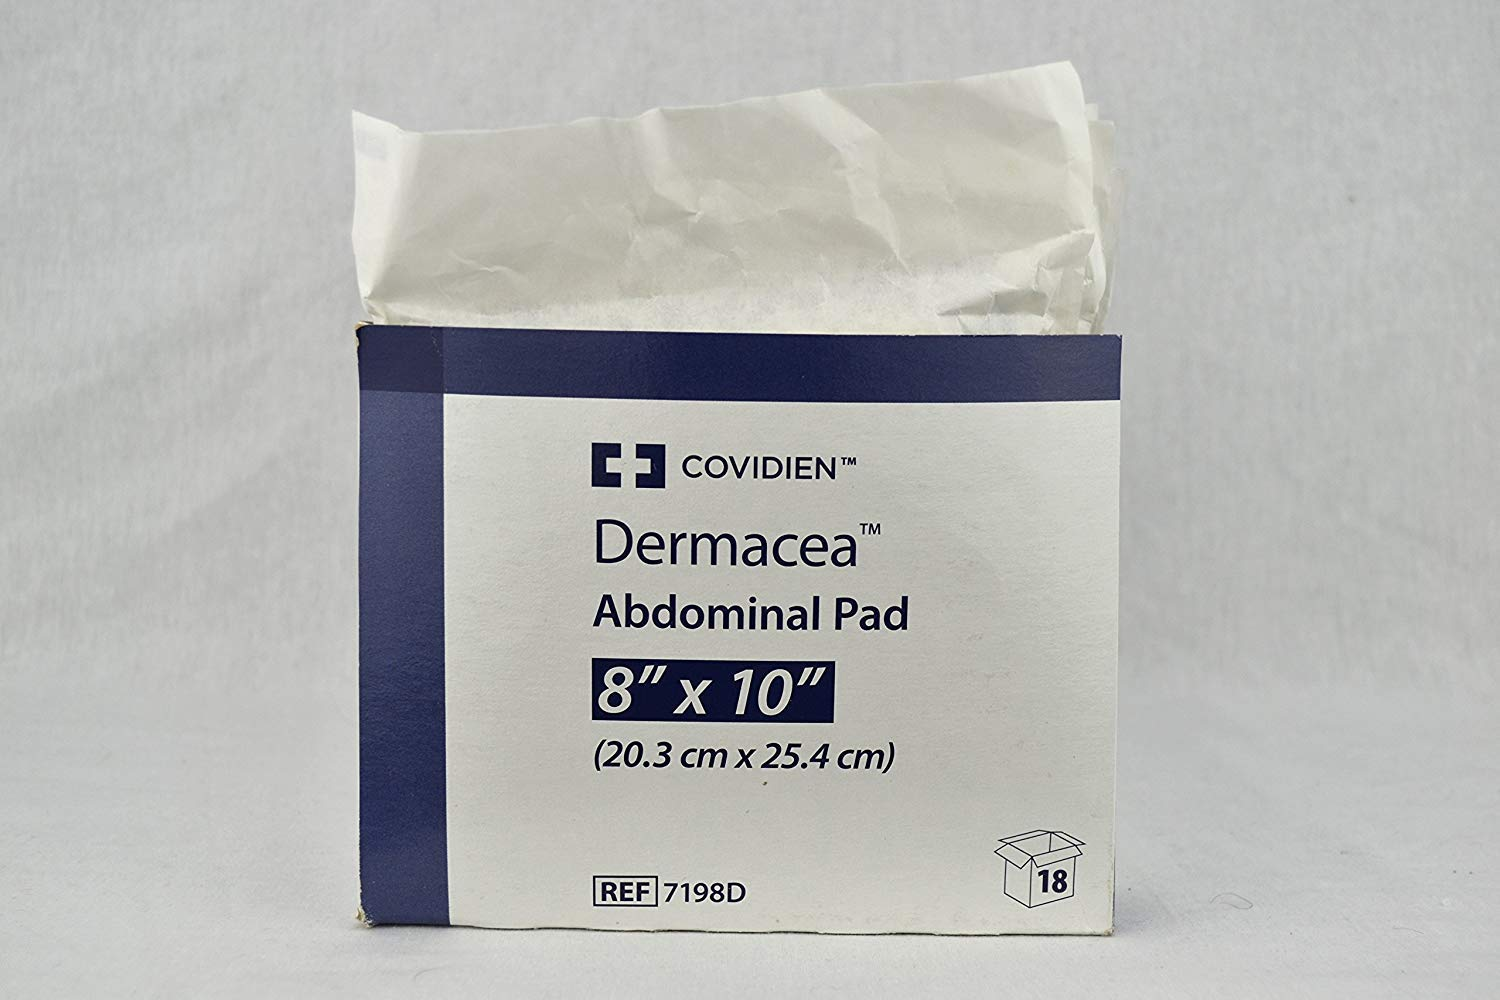 Dermacea Abdominal Pads, 8 x 10 Inch - Case of 216 by Kendall/Covidien